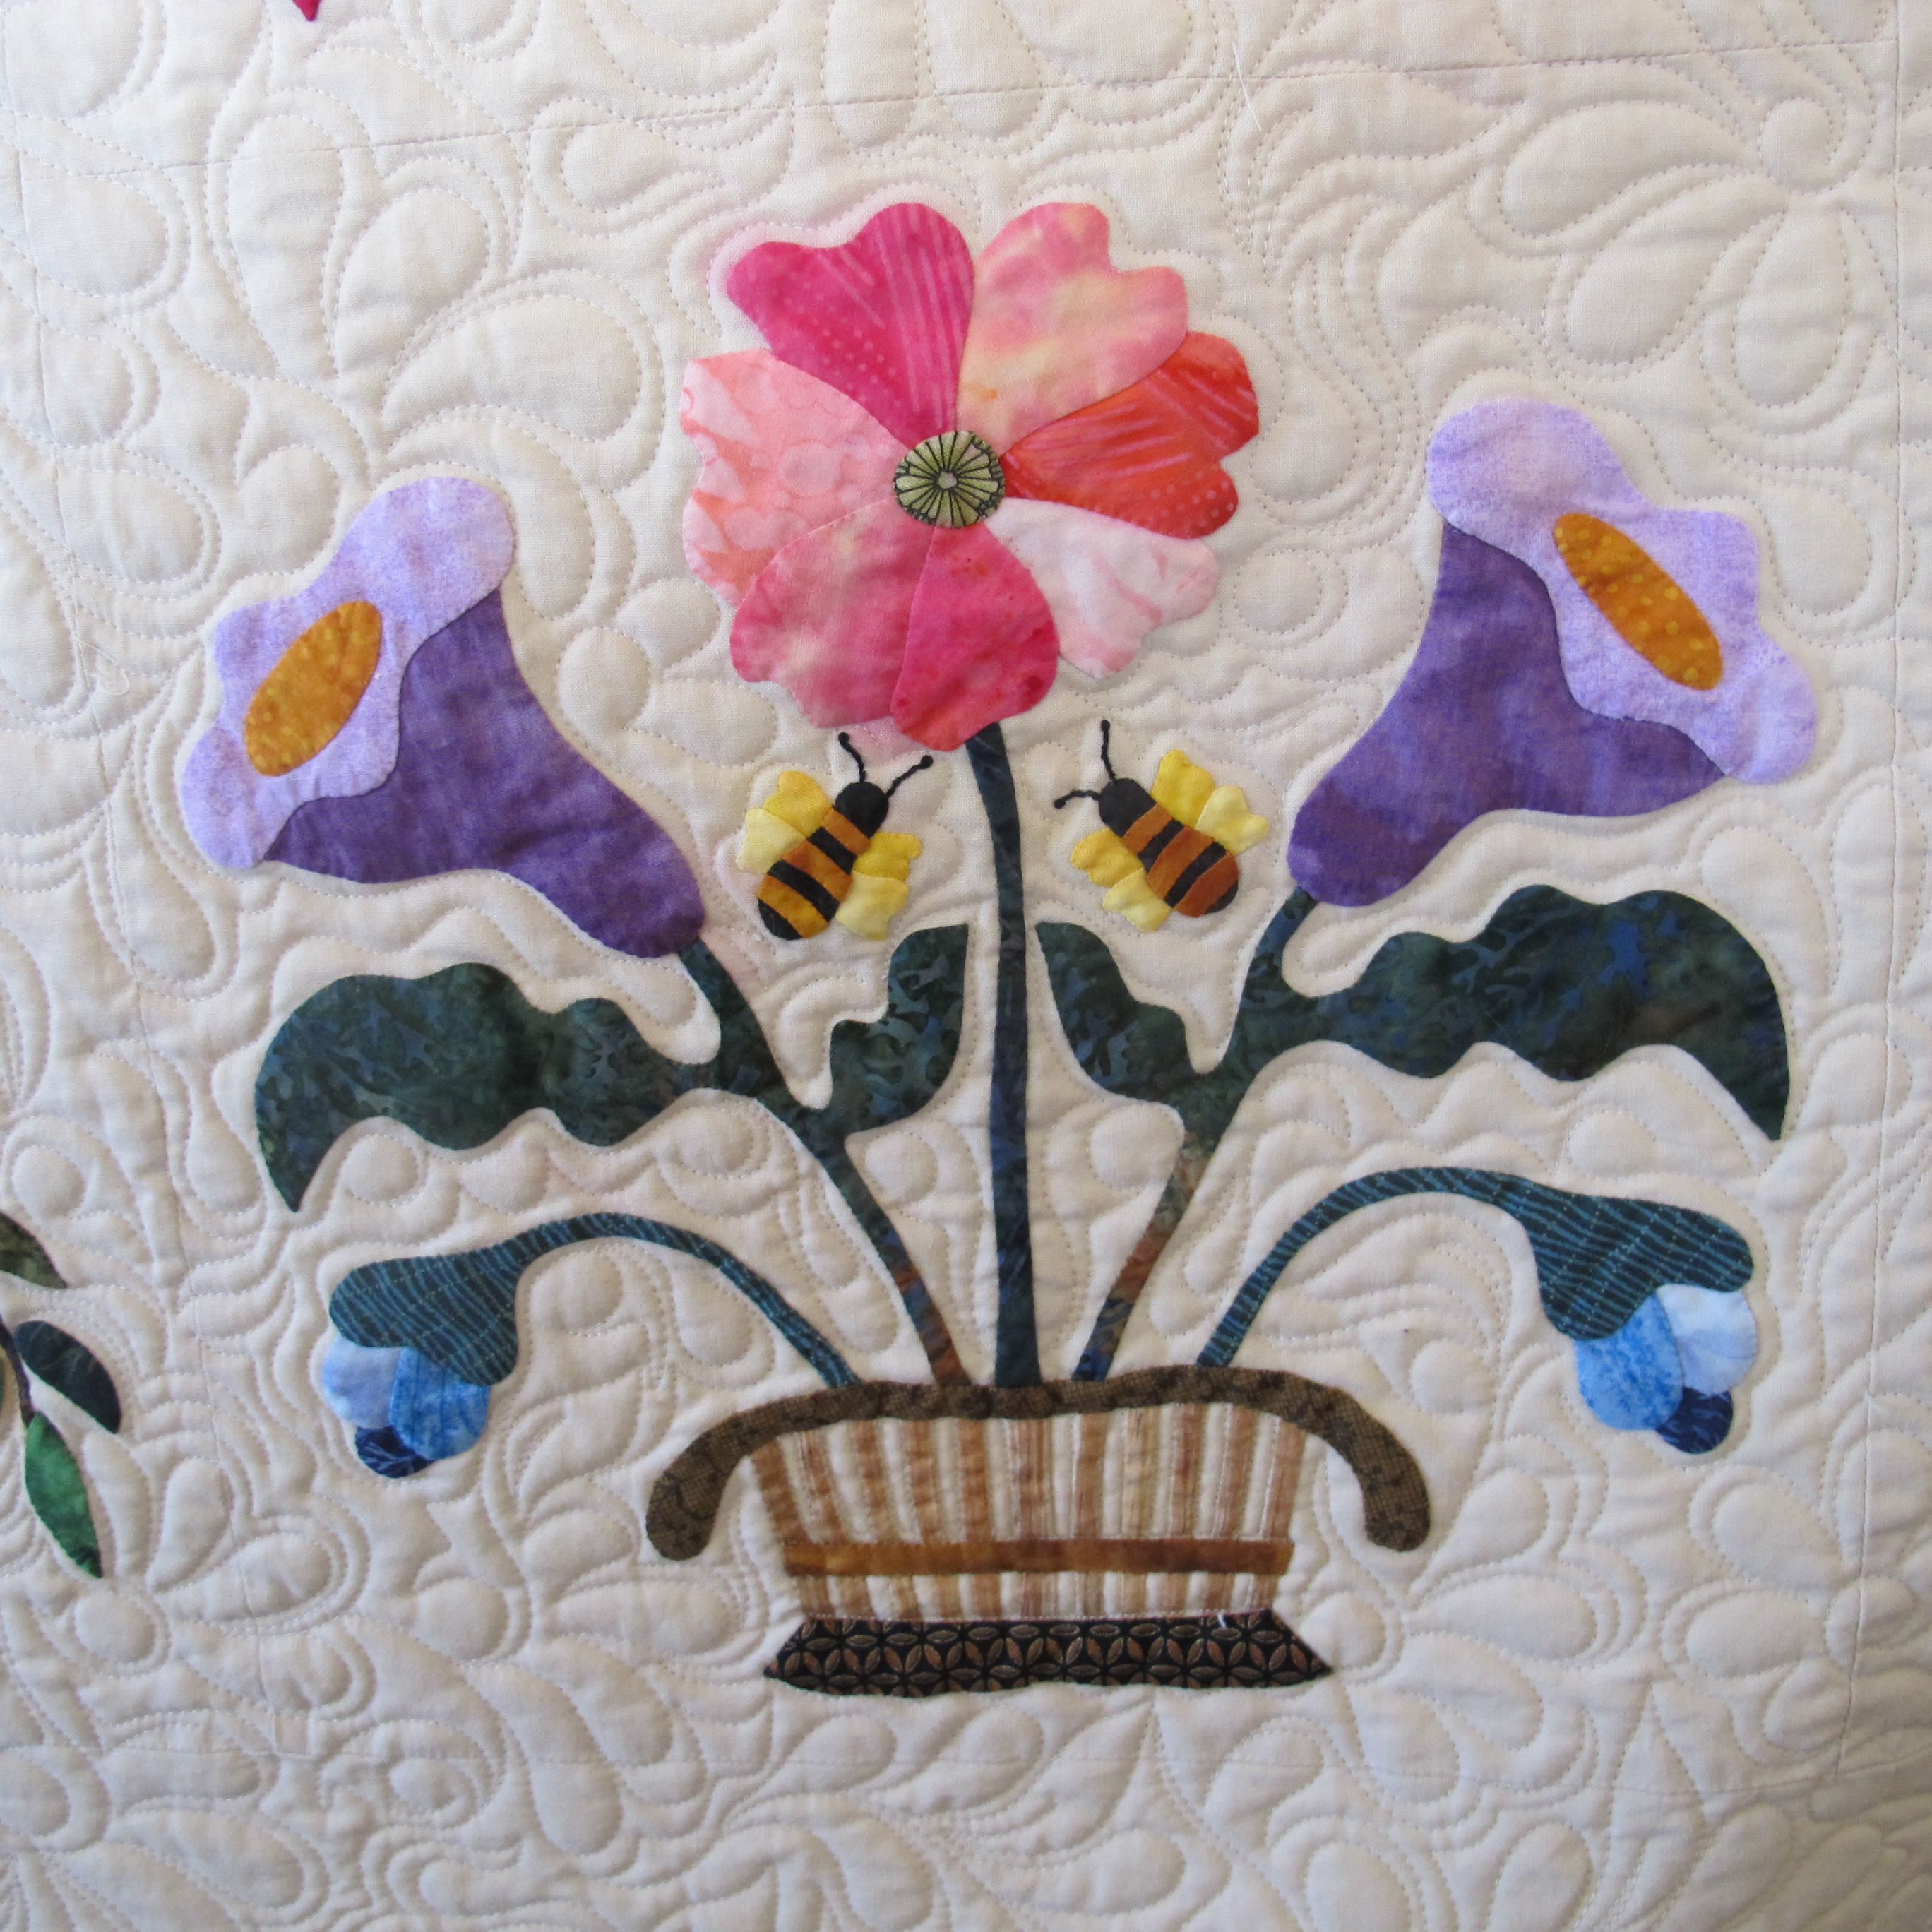 Flower basket applique quilt block from Heartland by Janet Beyea ... : quilting from the heartland - Adamdwight.com